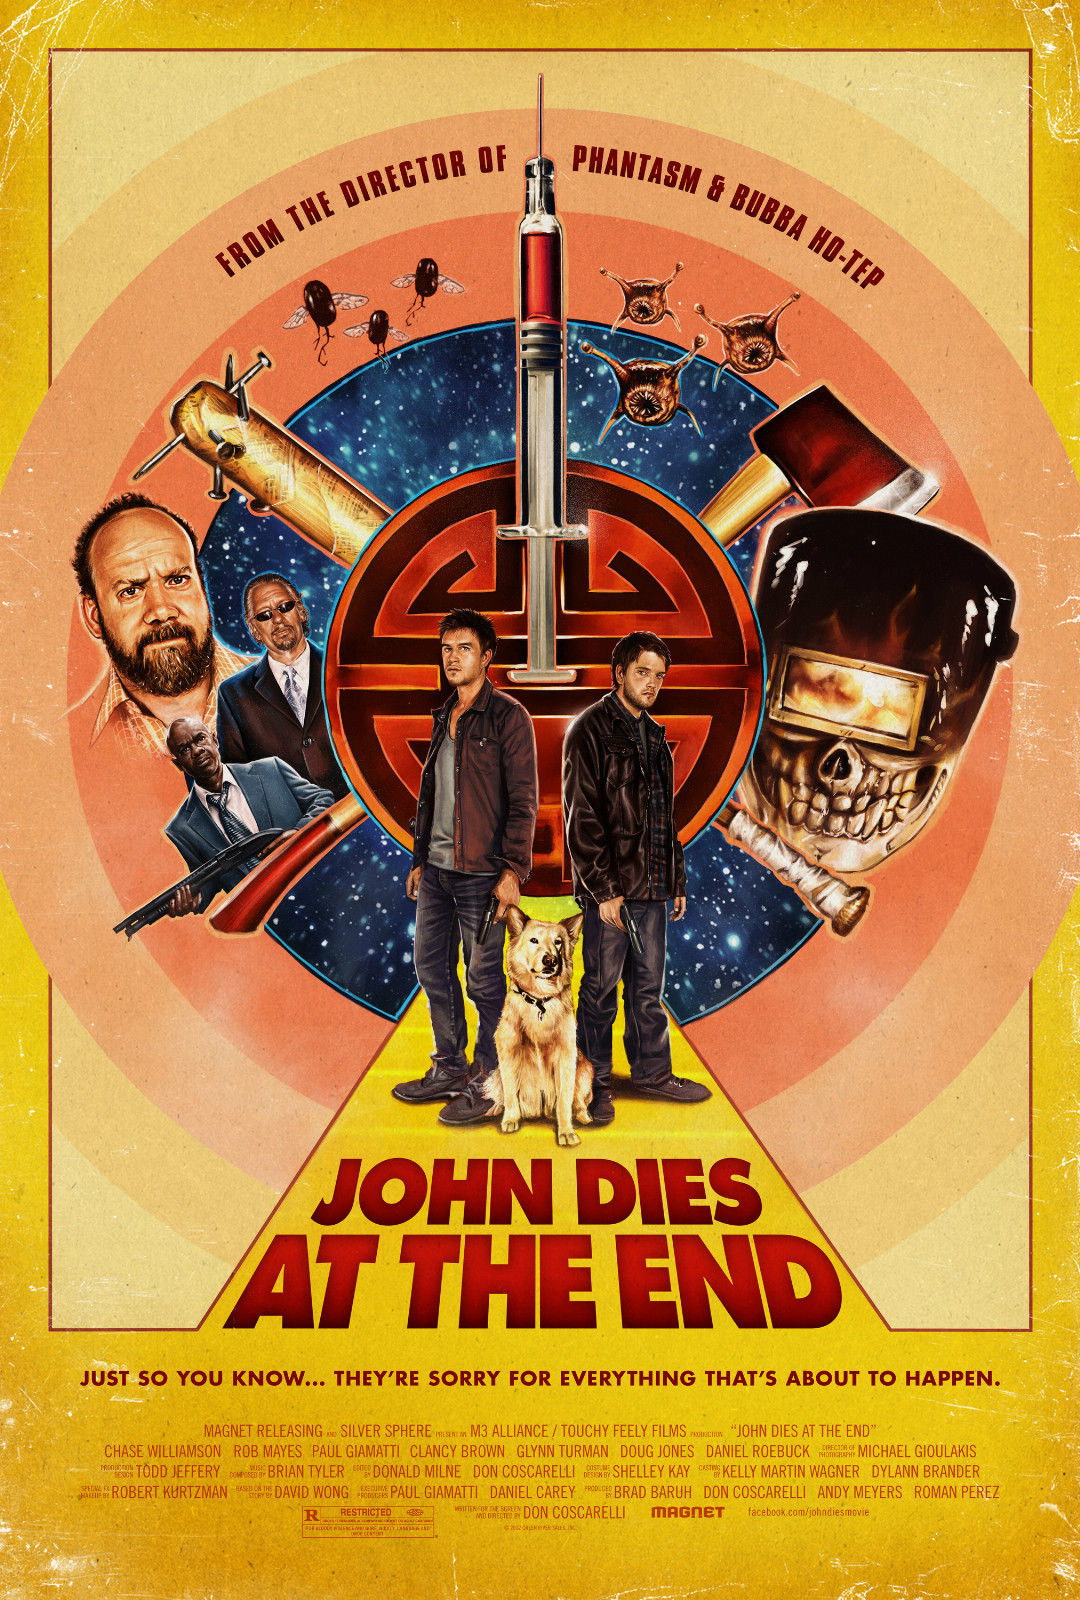 73078-JOHN-DIES-AT-THE-END-Movie-David-Wong-Wall-Print-Poster-Affiche